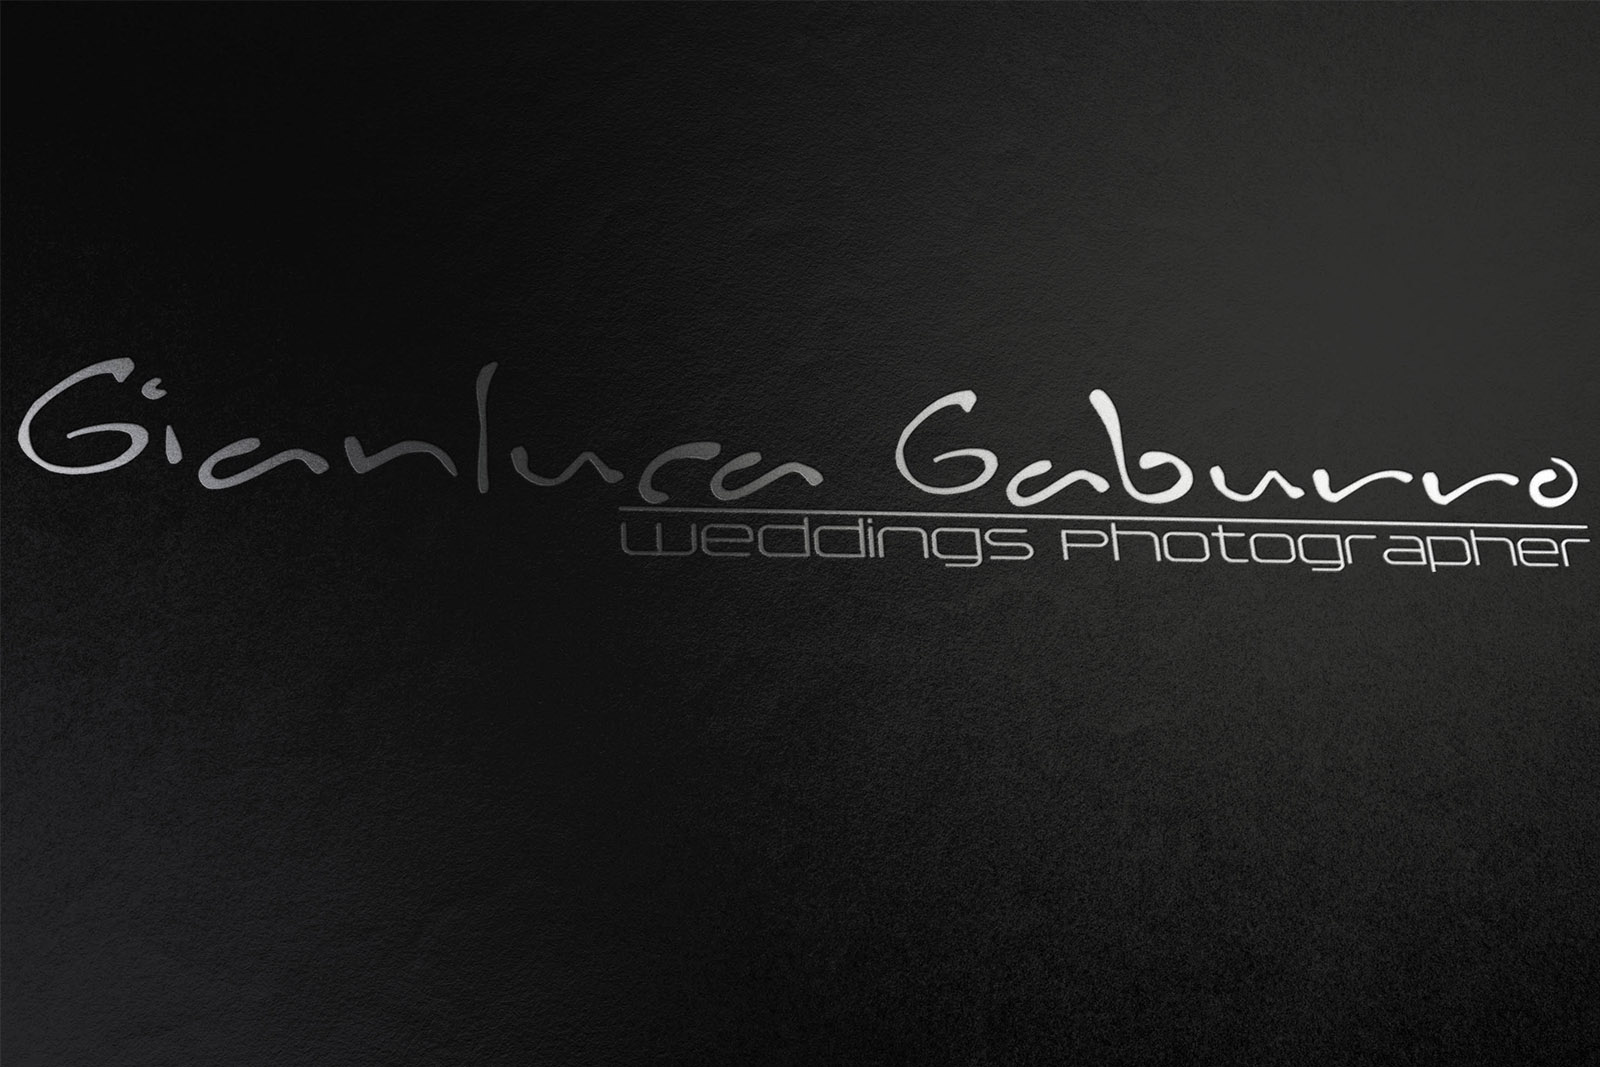 Tescaroli Creative and Logo Gianluca Gaburro